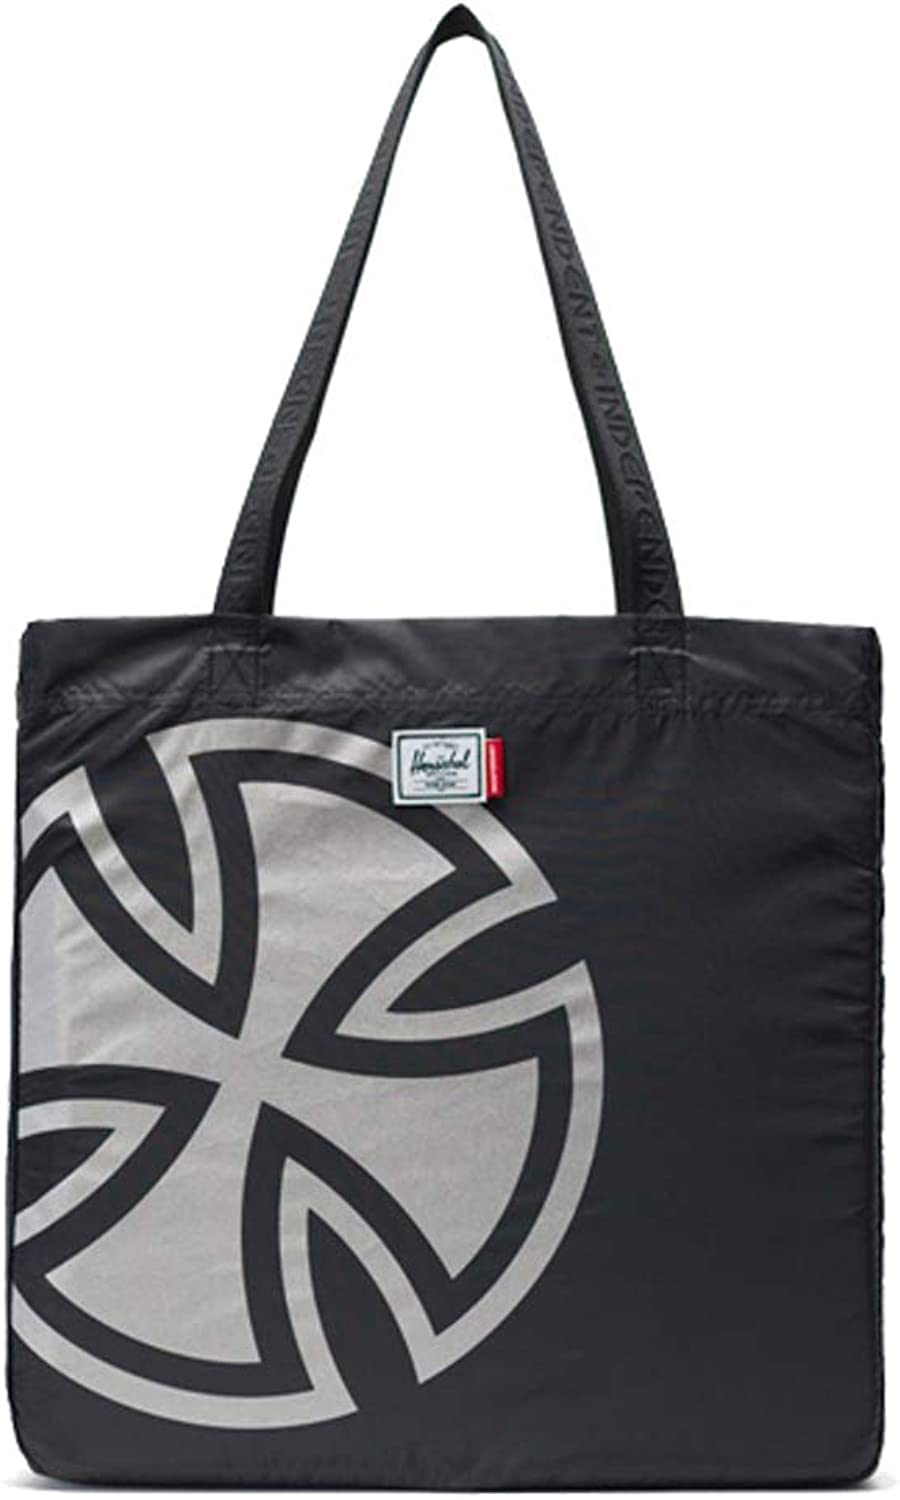 Herschel Supply Co. Travel Bags  New Packable Tote  Independent Olive Night